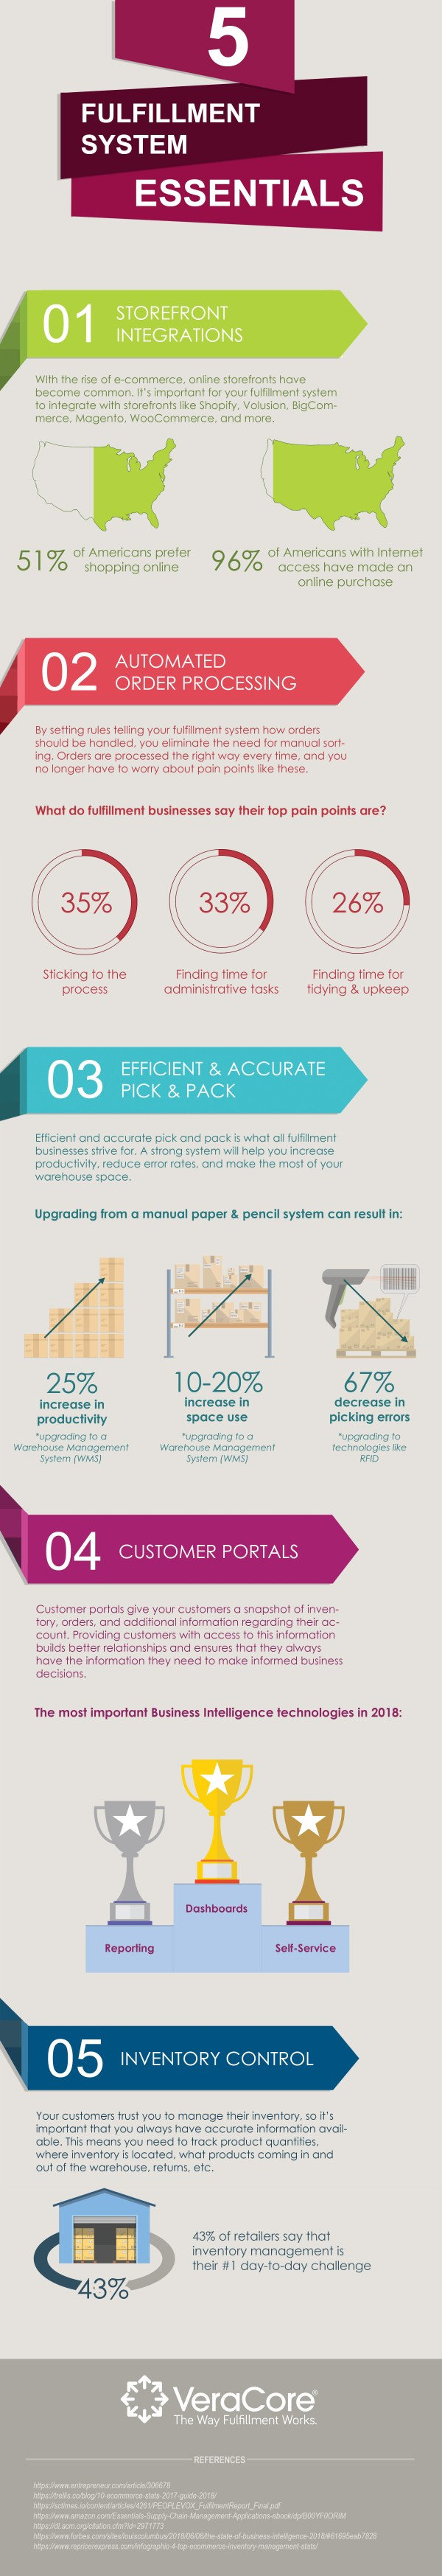 fulfillment essentials infographic